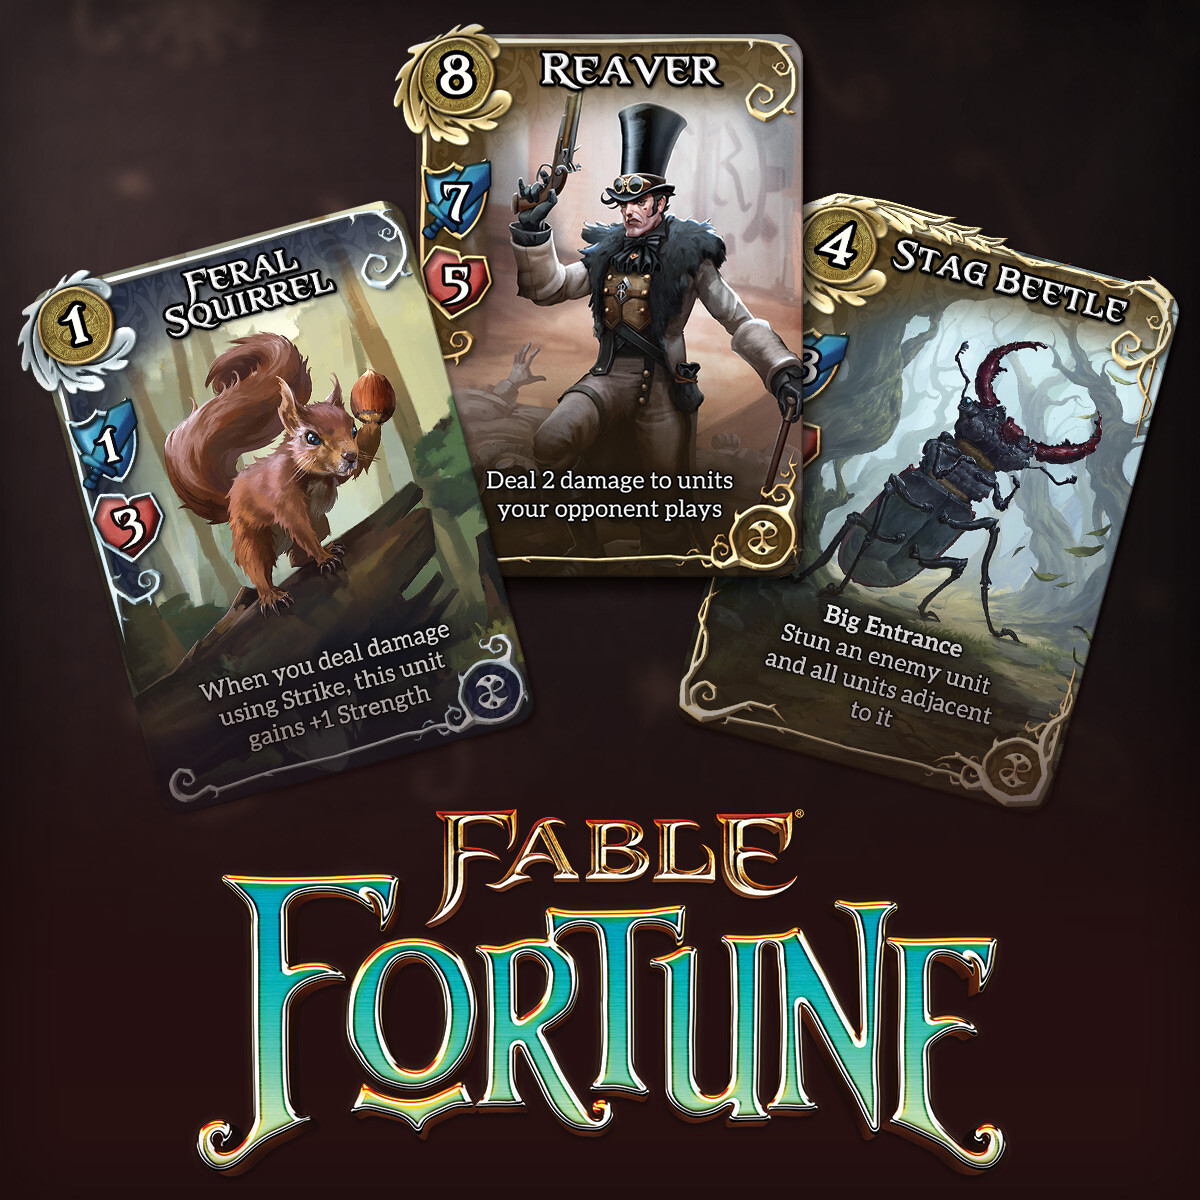 Jenny Brewer - Fable Fortune Card Design